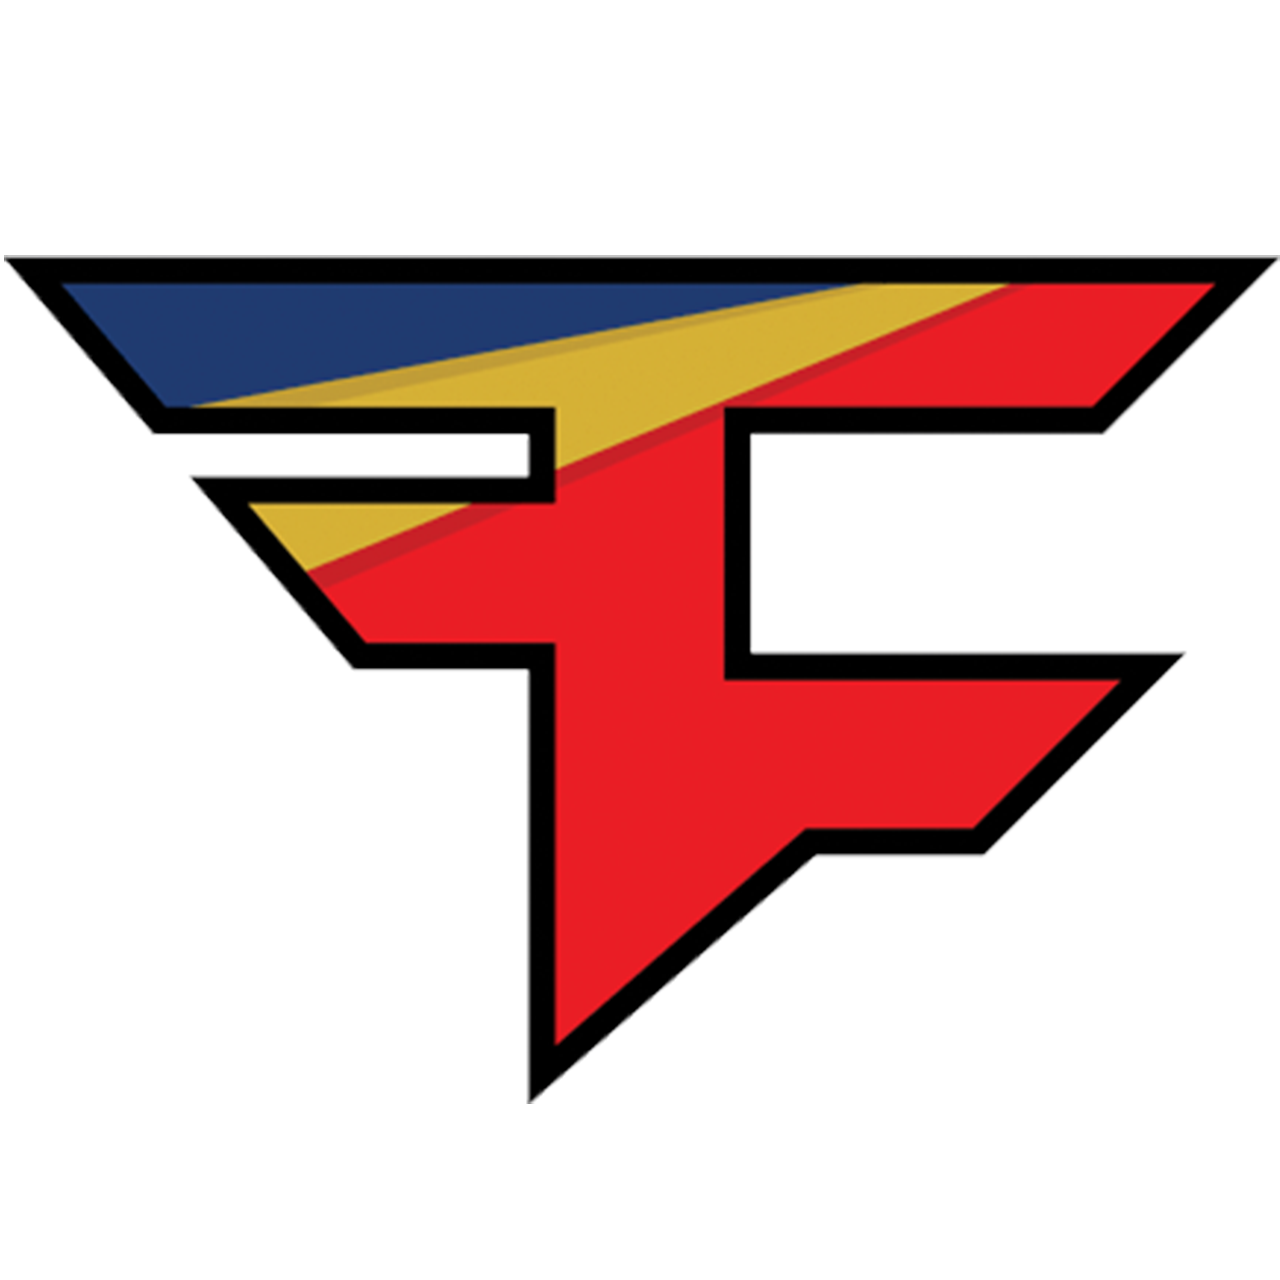 FaZe Clan team logo